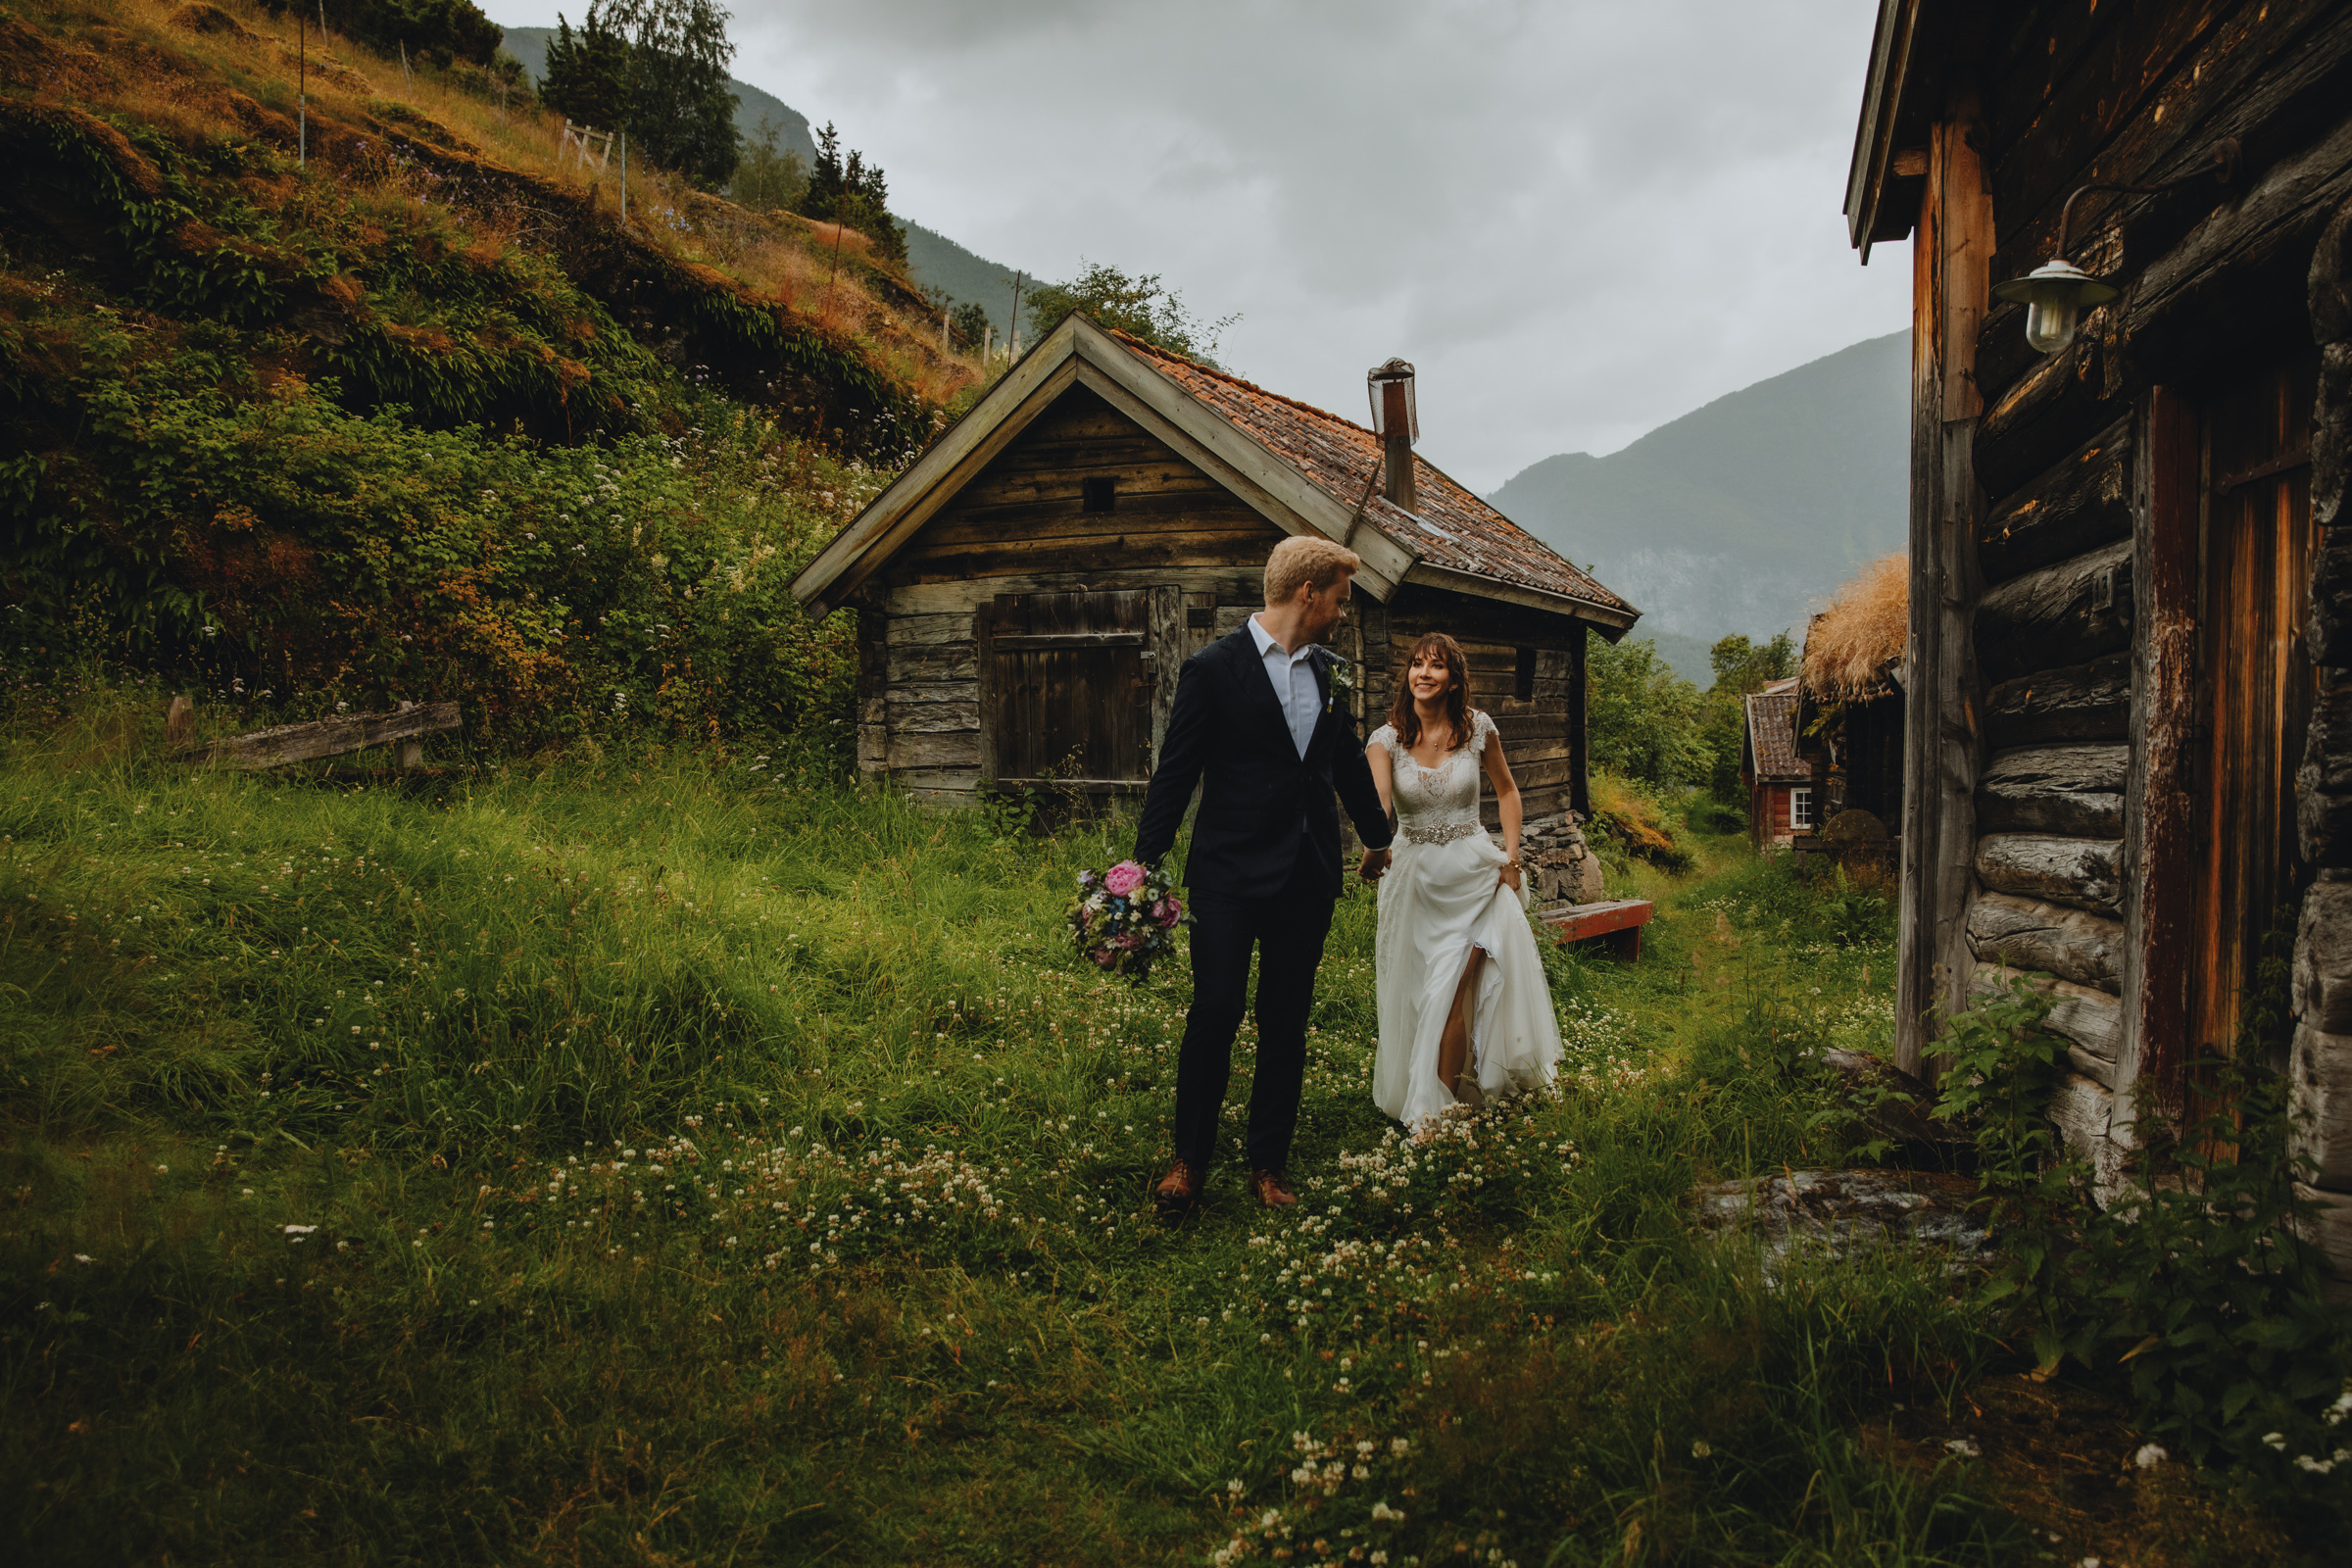 Elopement couple among rustic cabins in Aurland Norway - photo by Christin Eide Photography